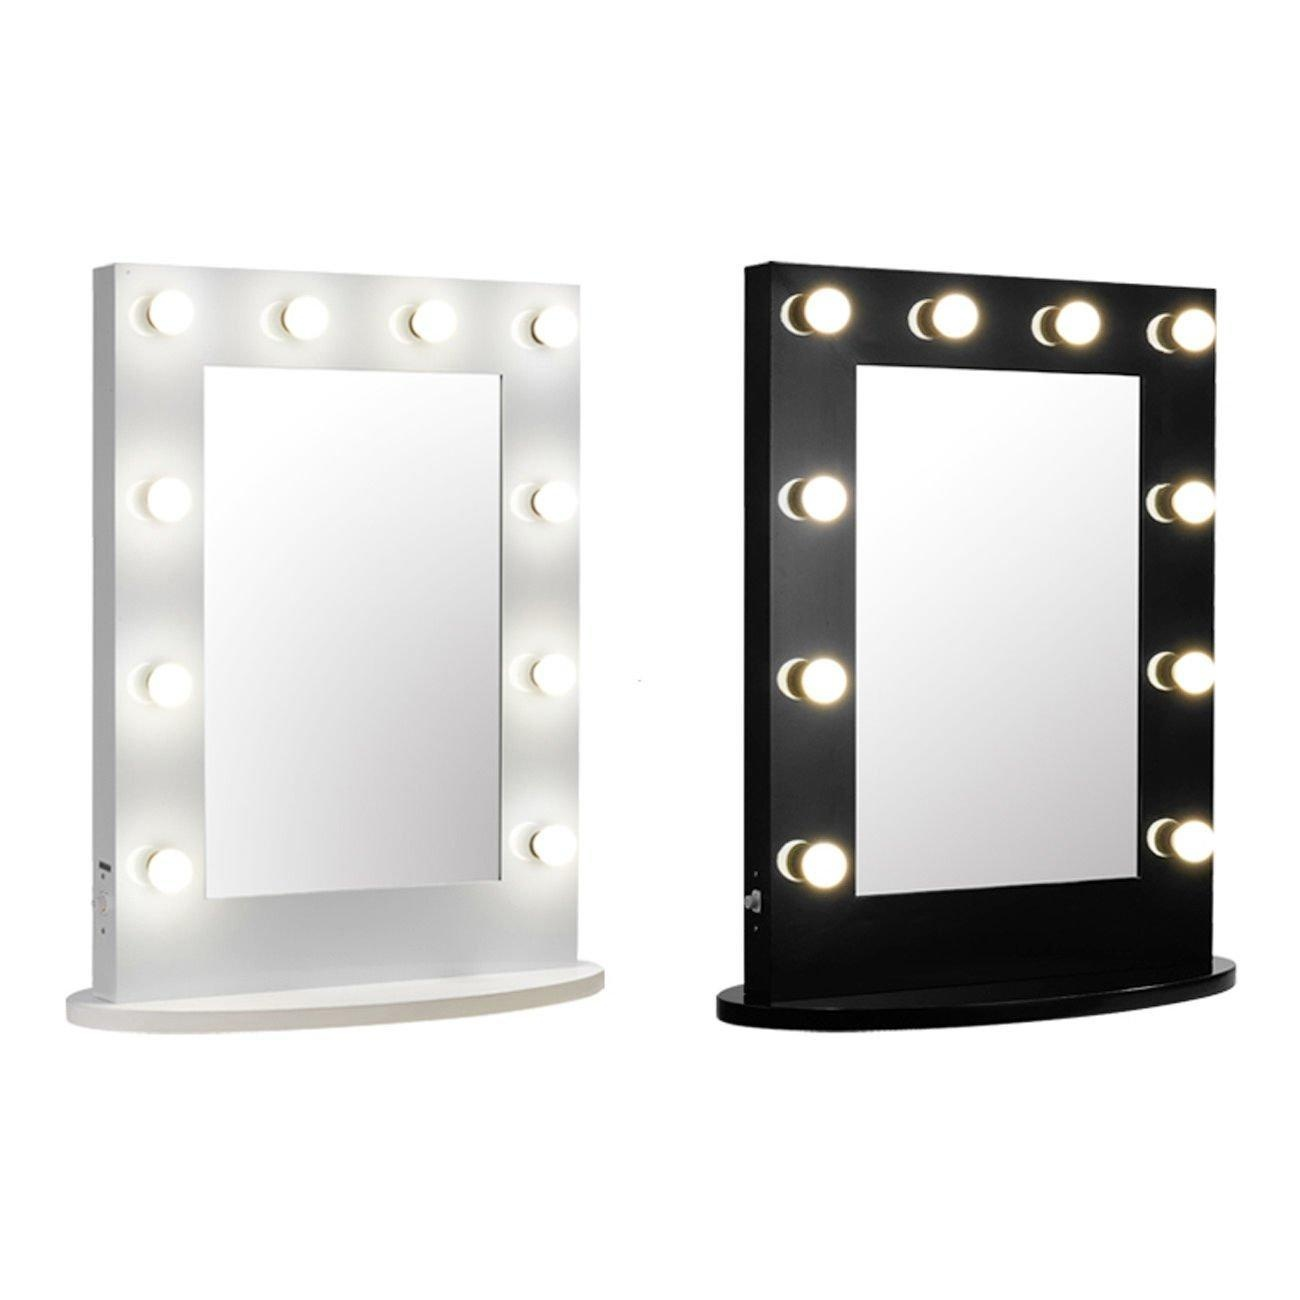 10 reasons to buy wall makeup mirror with lights warisan for Beauty mirror